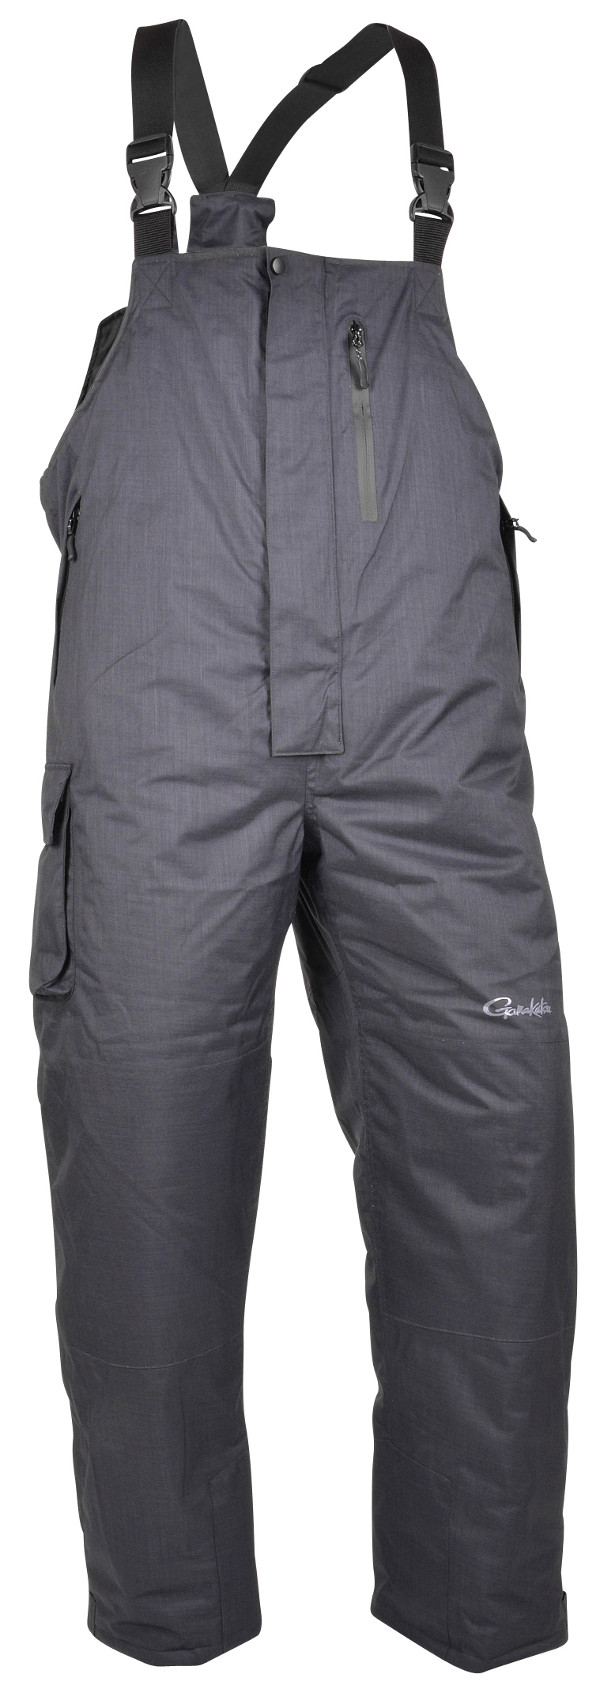 Gamakatsu Thermal Pants (maat XL en XXL)